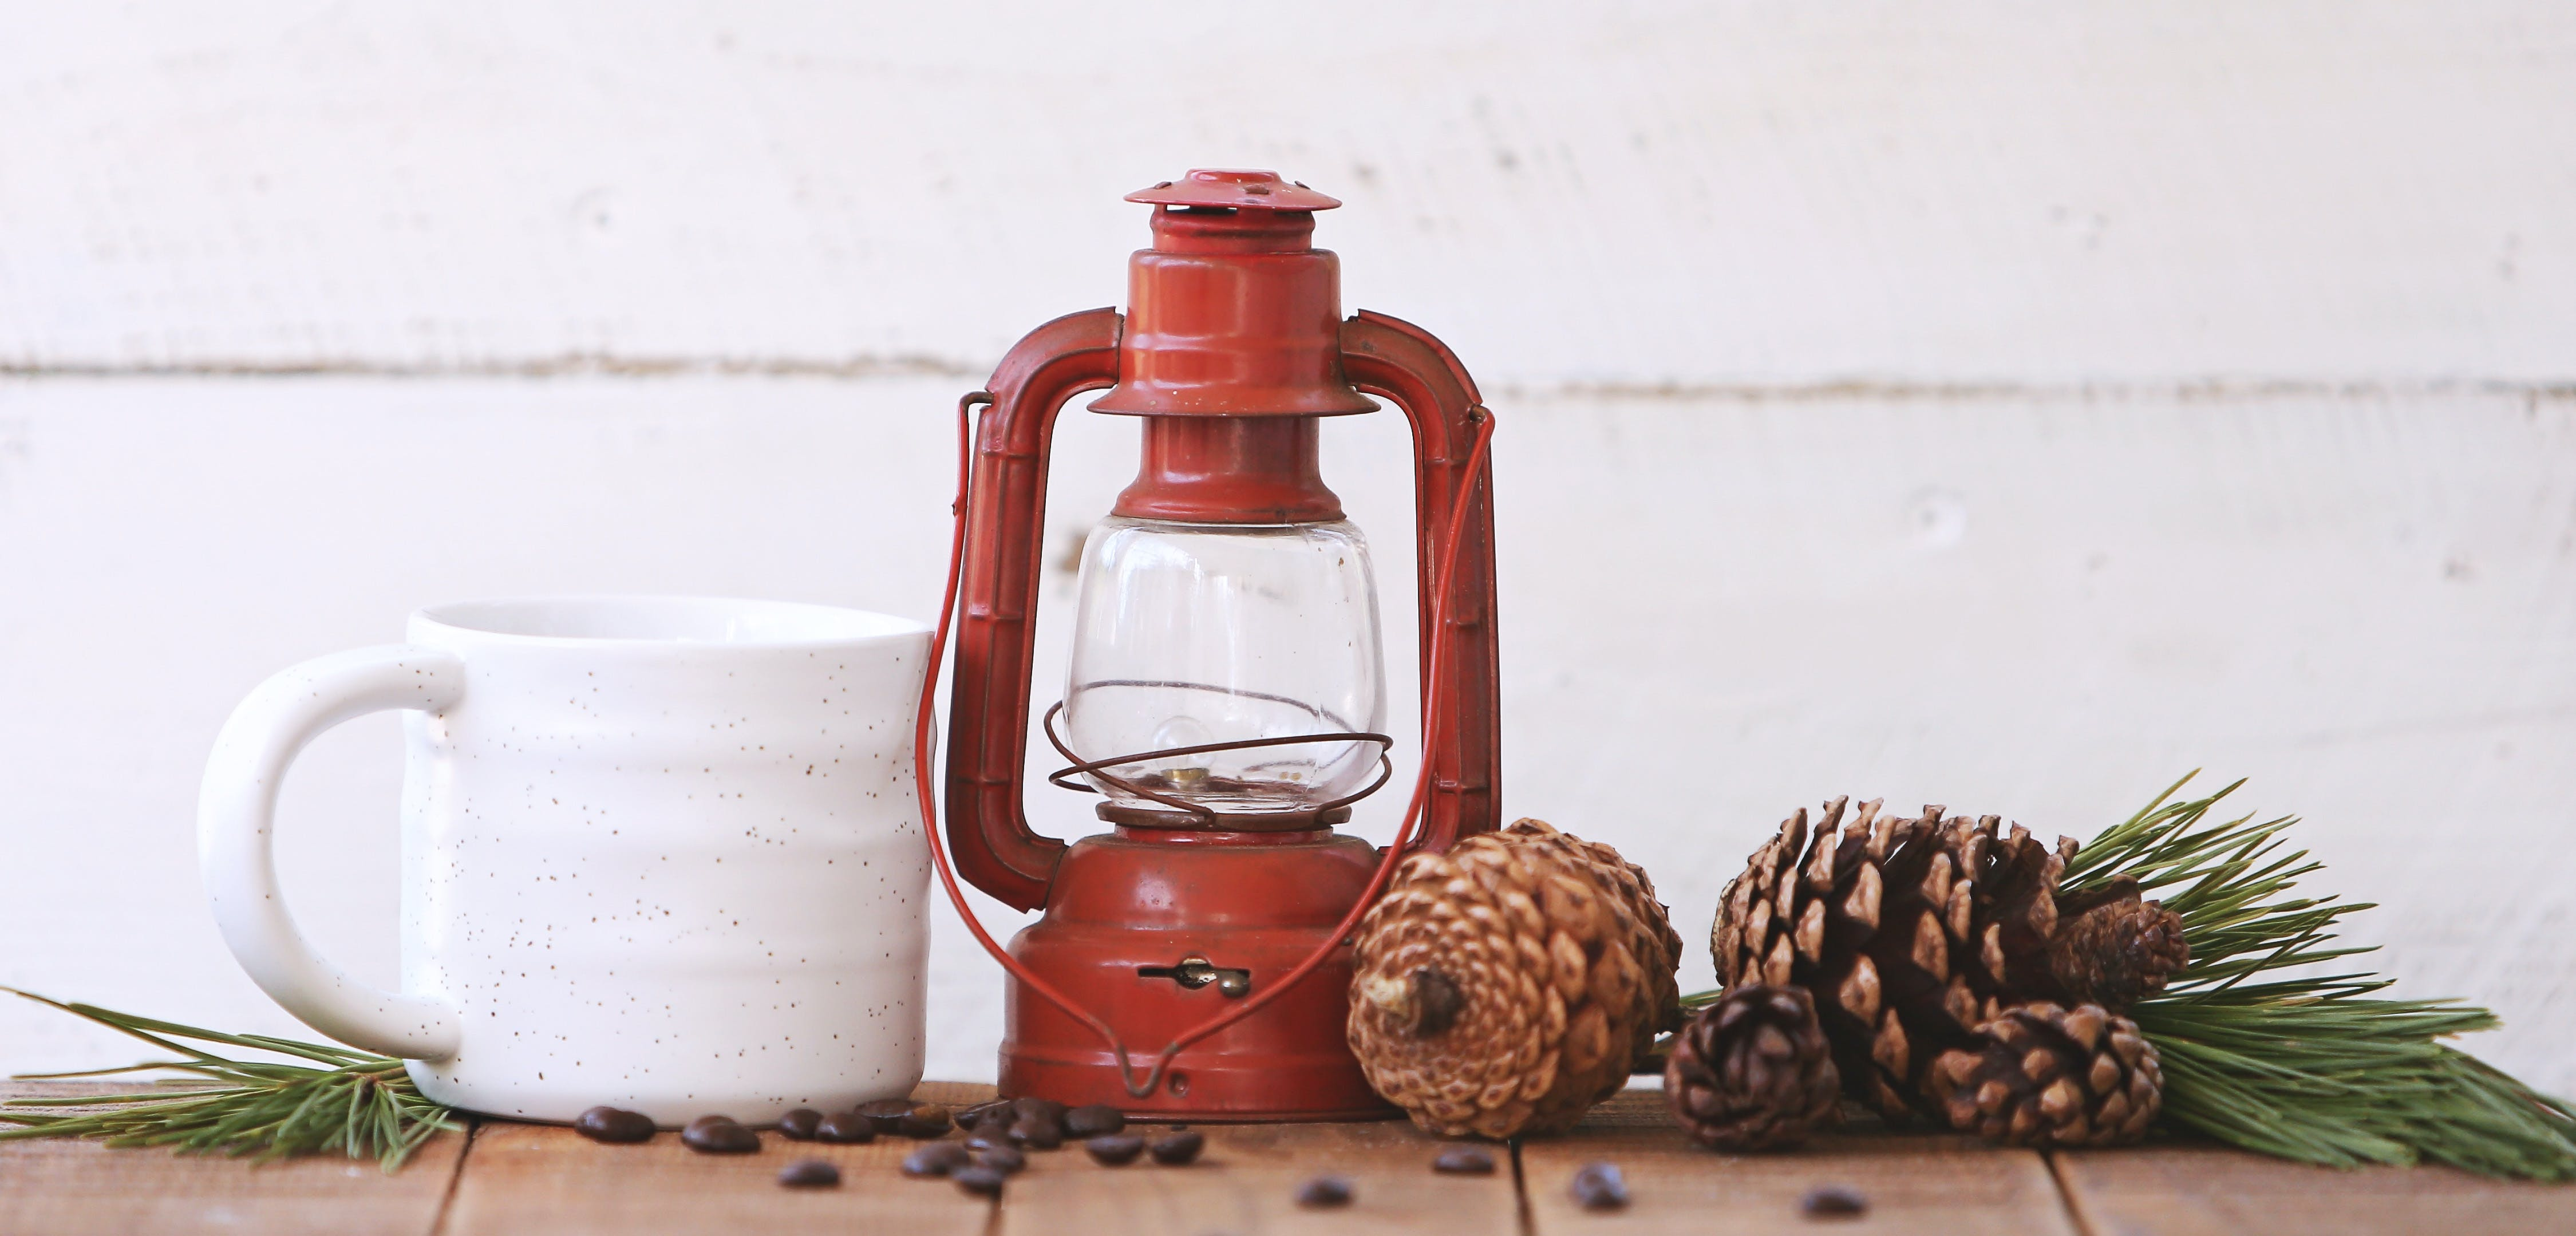 Red Kerosene Lantern Beside White Ceramic Mug on Brown Wooden Table